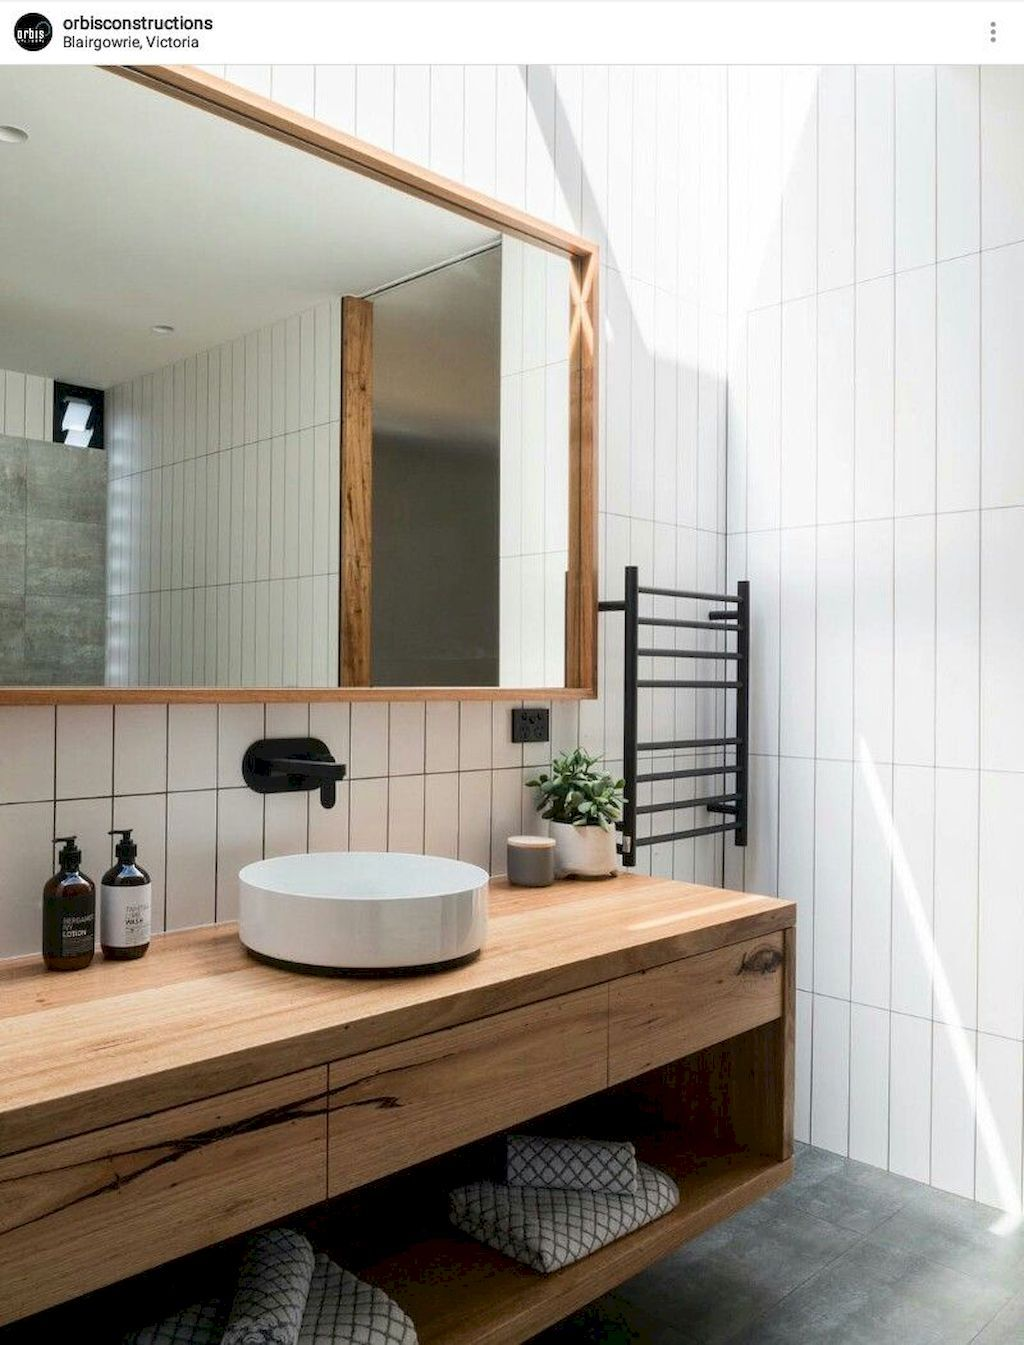 Brilliant and Effective Shelving Ideas Updating The Old Bathroom Display